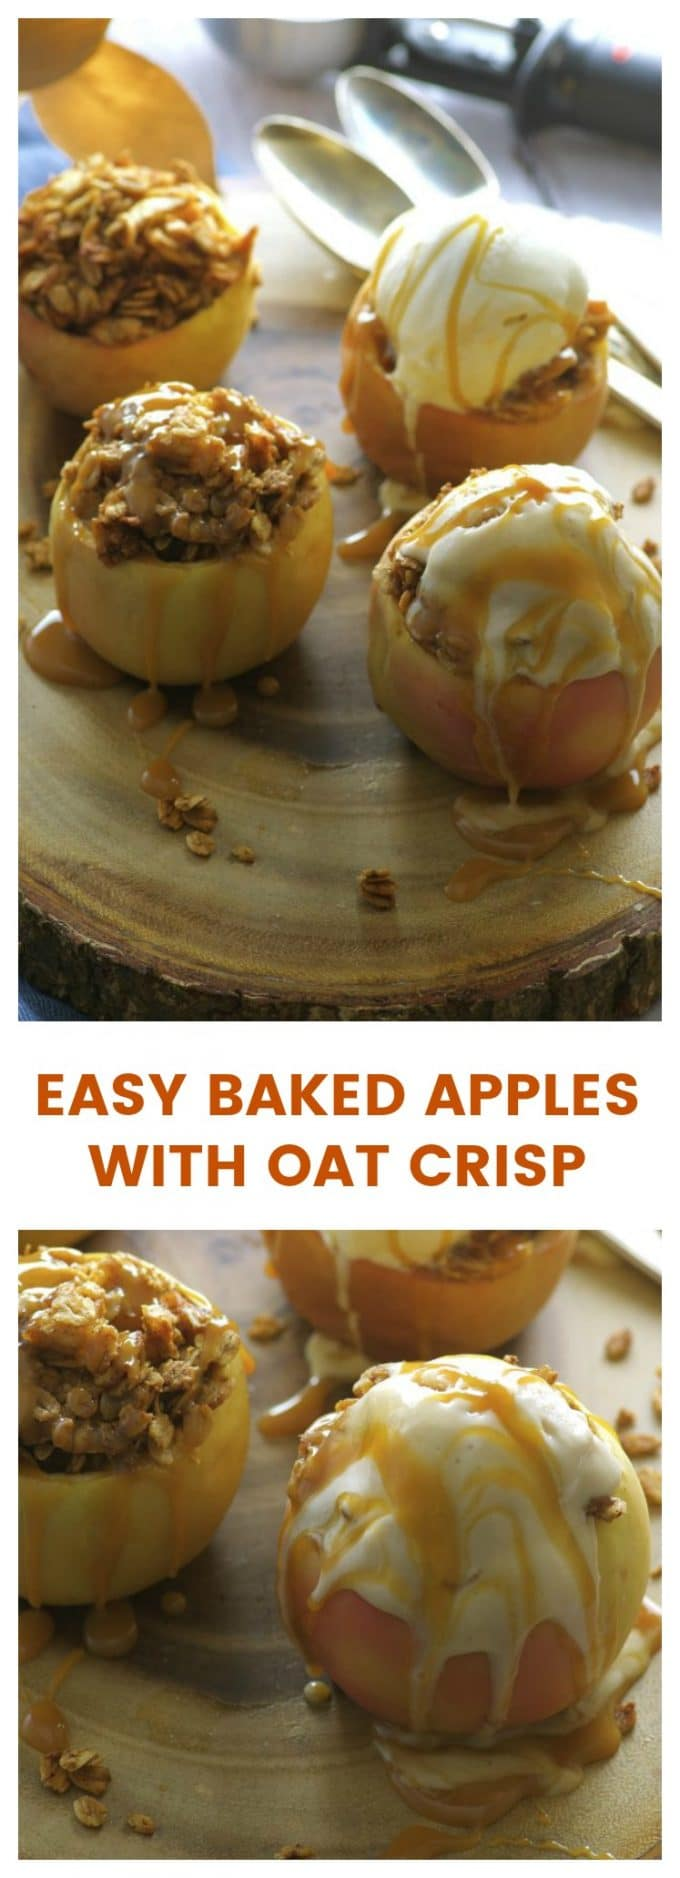 Easy Baked Apples With Oat Crisp May I Have That Recipe